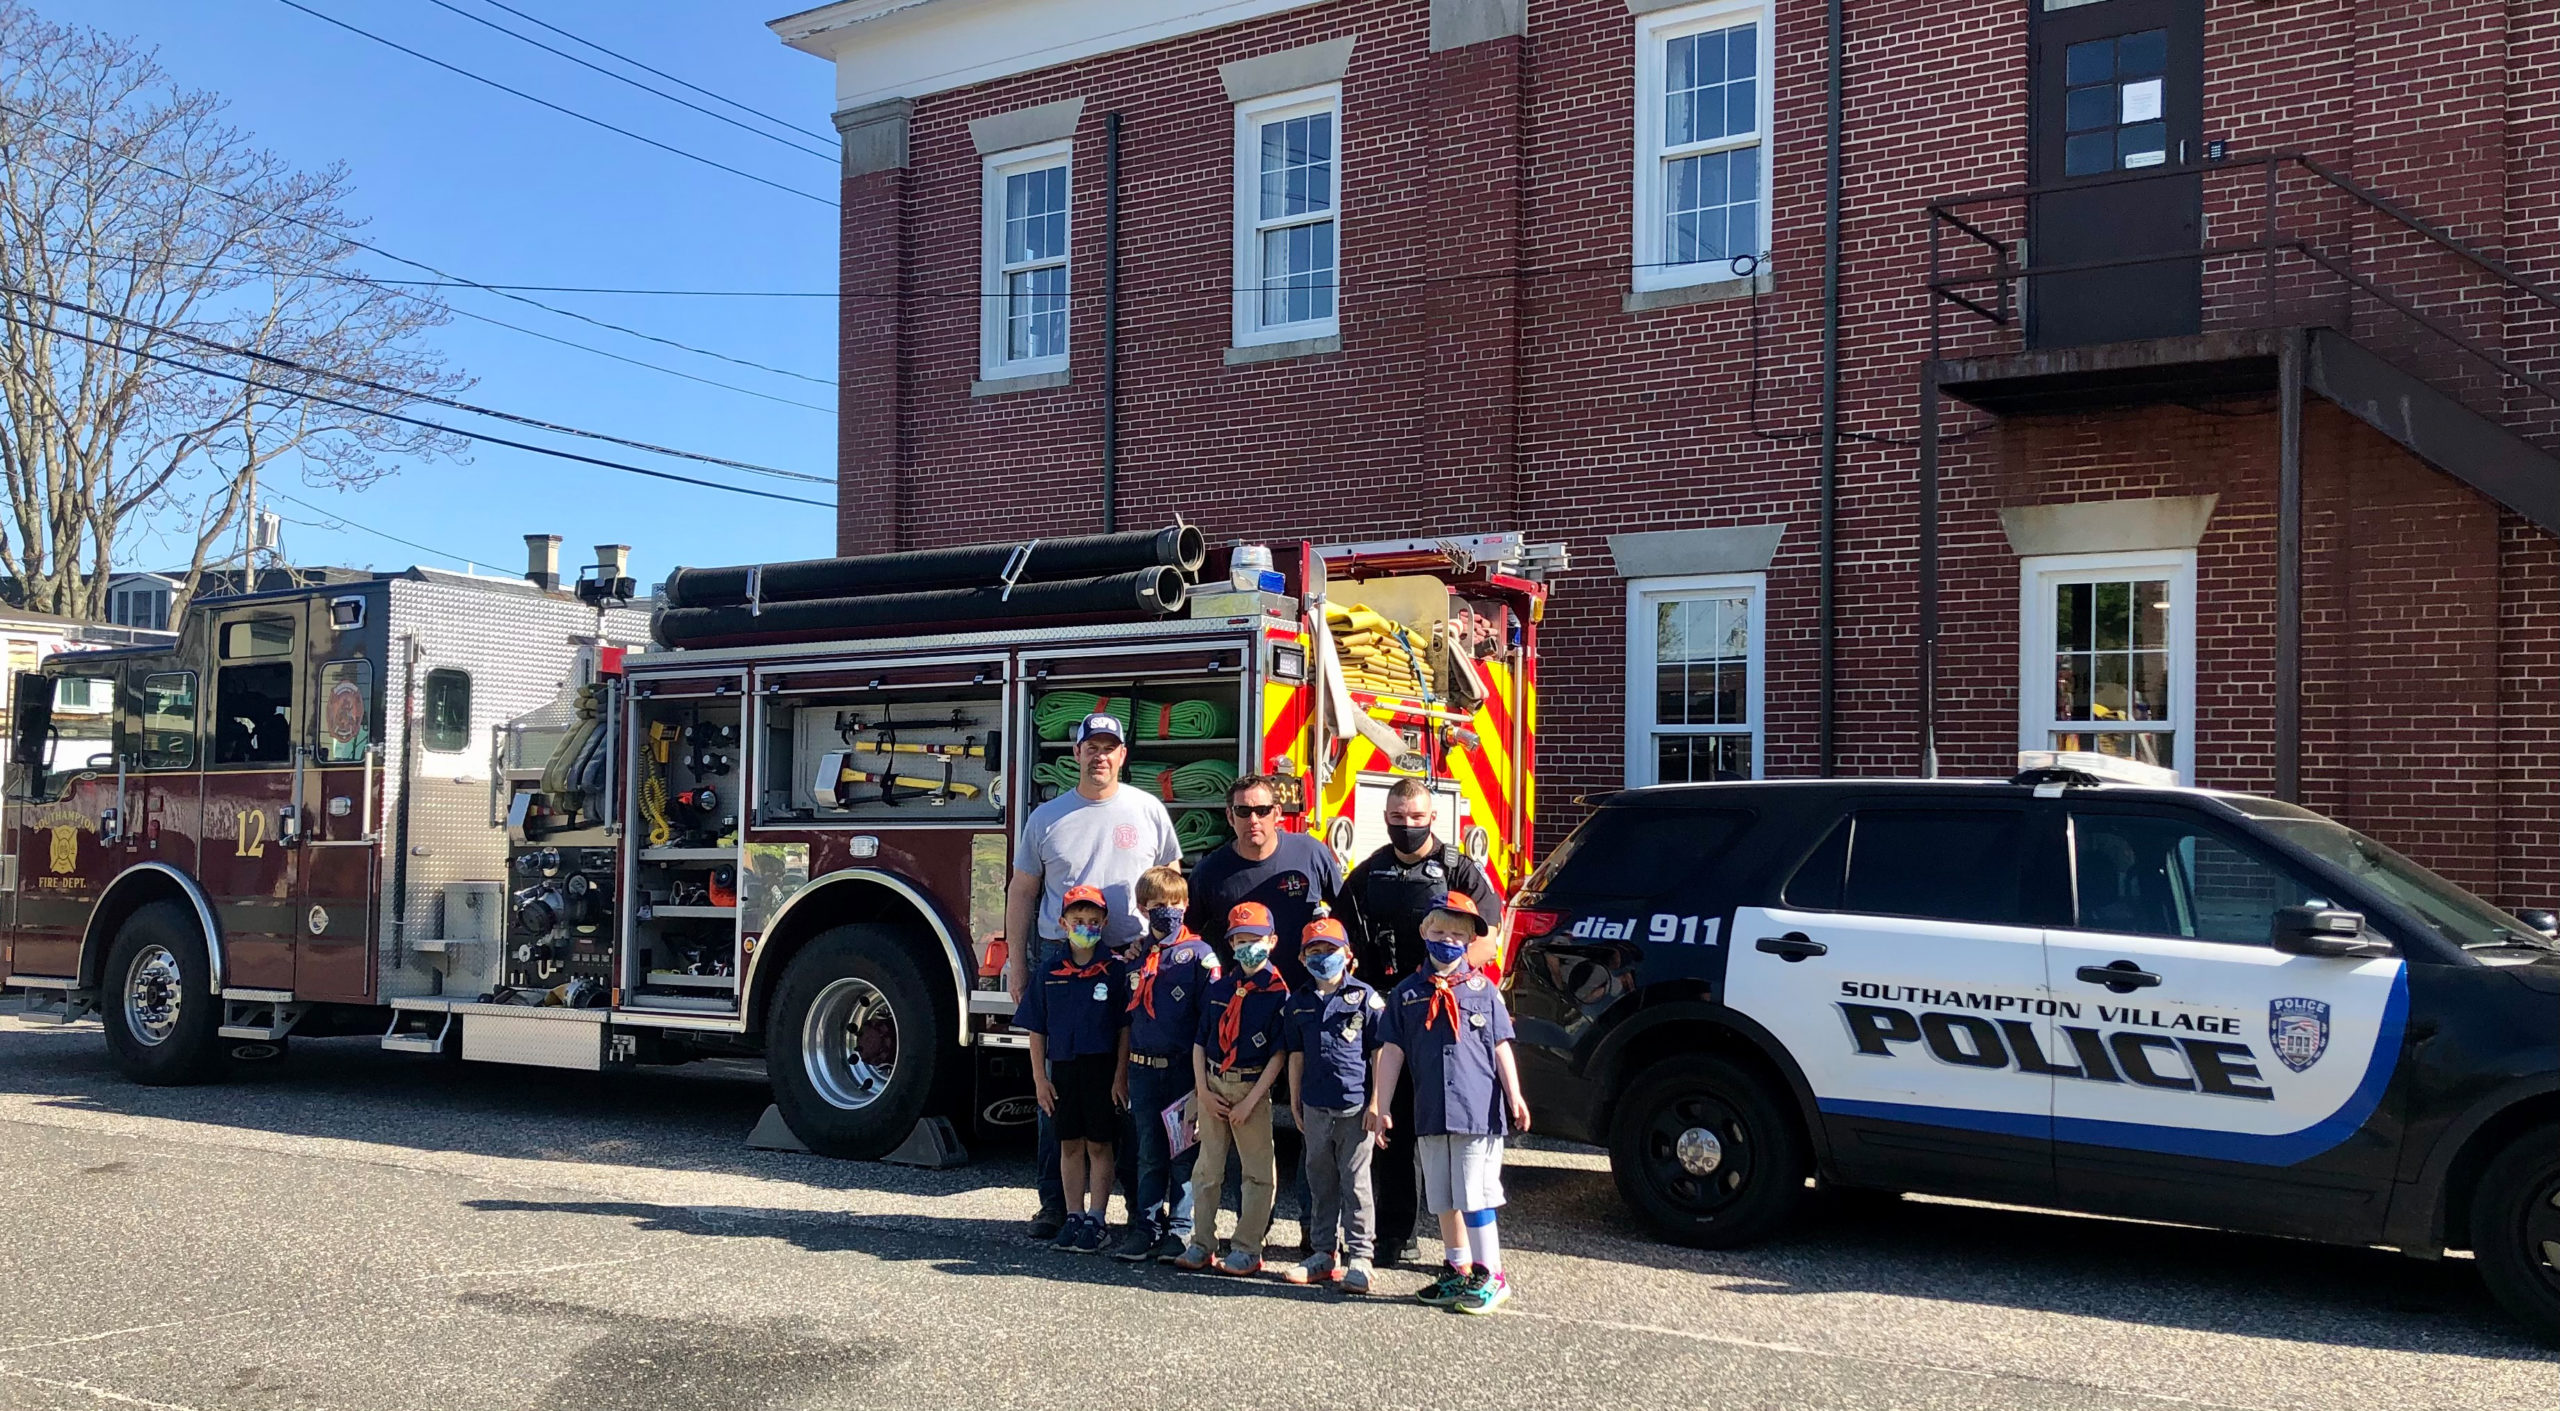 Cub Scout Pack 14 Tiger Den visited with members of Southampton Fire Department, Southampton Village Volunteer Ambulance, and Southampton Village Police Department on Friday to learn about the emergency services and earn the Tiger Safe and Smart achievement. Back row, left to right, Chris Capalbo, Gene Squires and Kyle McGuiness. Front row, left to right,  JT Ingram, Thomas Capalbo, Desmond O'Leary, Cole D'Italia and Tavin Tietjen.            COURTESY CHRIS CAPALBO